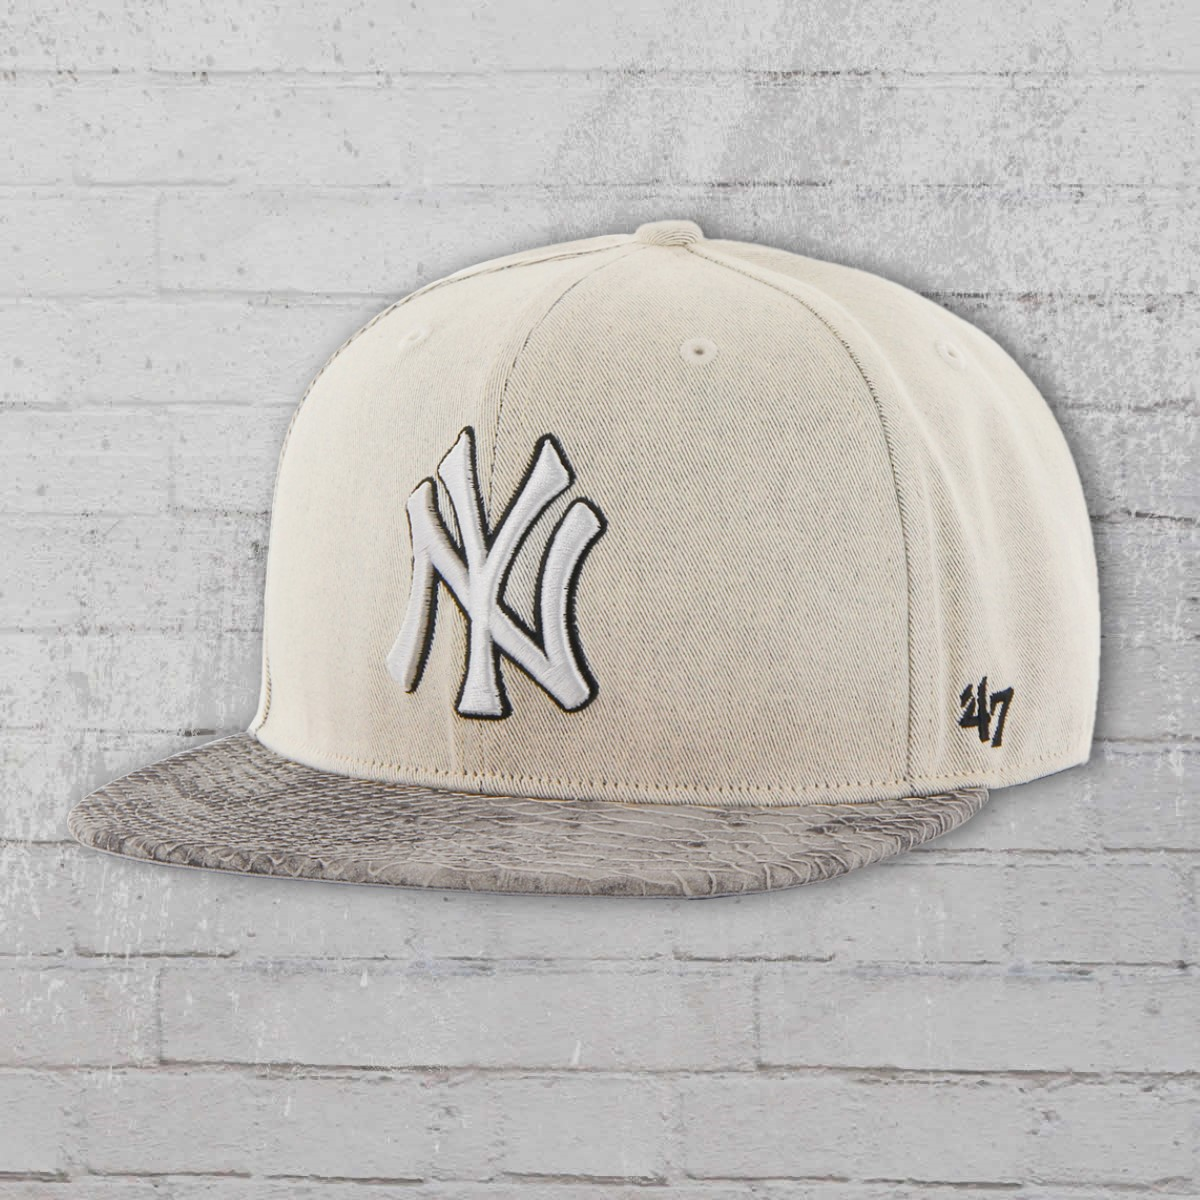 ... official 47 brands mbl hat new york yankees cap grey snake 3a33f f8d4e 914198e0117